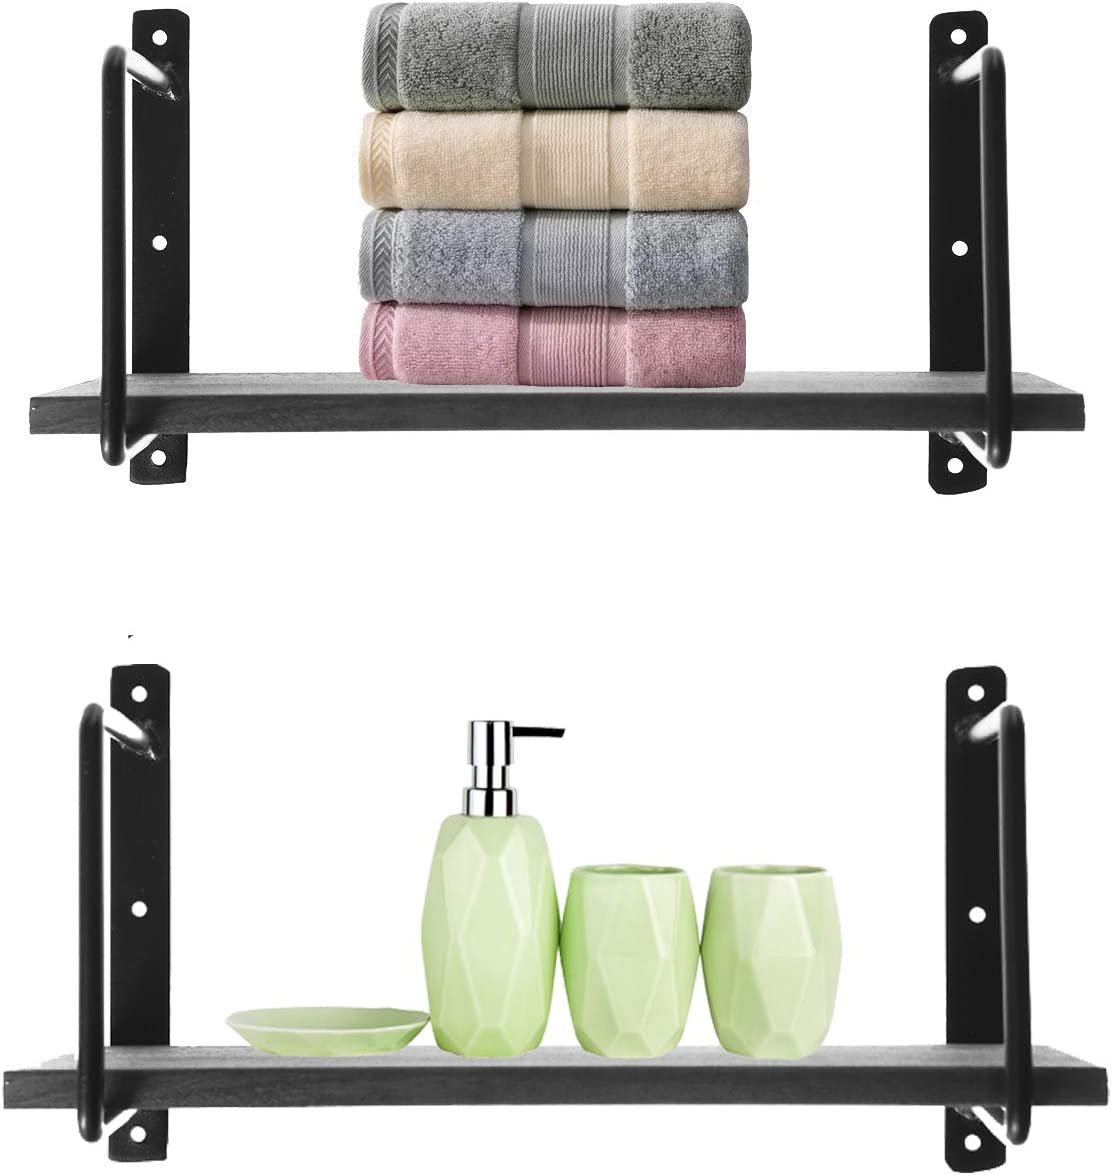 Riplz Home Wall Shelf Set of 2 Gray Wood Shelves & 4 Metal Brackets Wall Mounted Shelves can Also be Used in Bathroom Bedroom Kitchen Dining Room Office and as Laundry Room Shelves